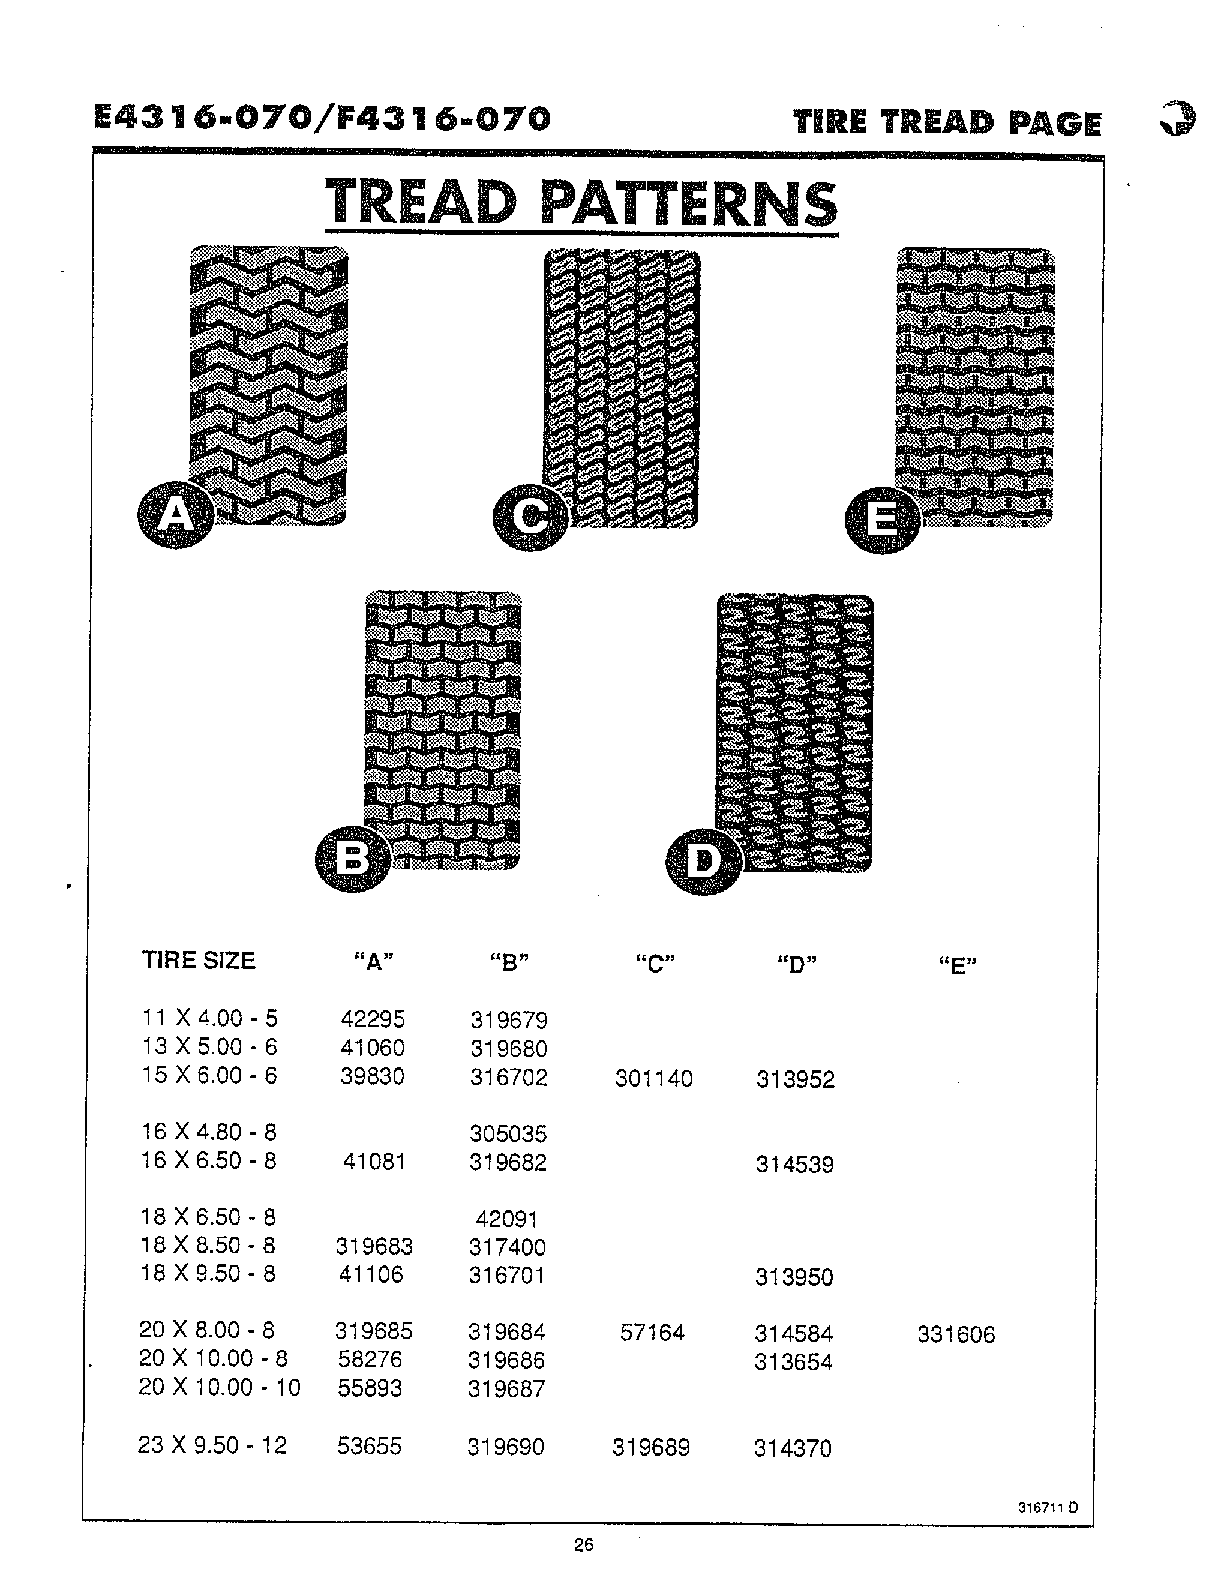 Noma Riding Lawn Mower Parts Diagram On Tire Tread Diagram